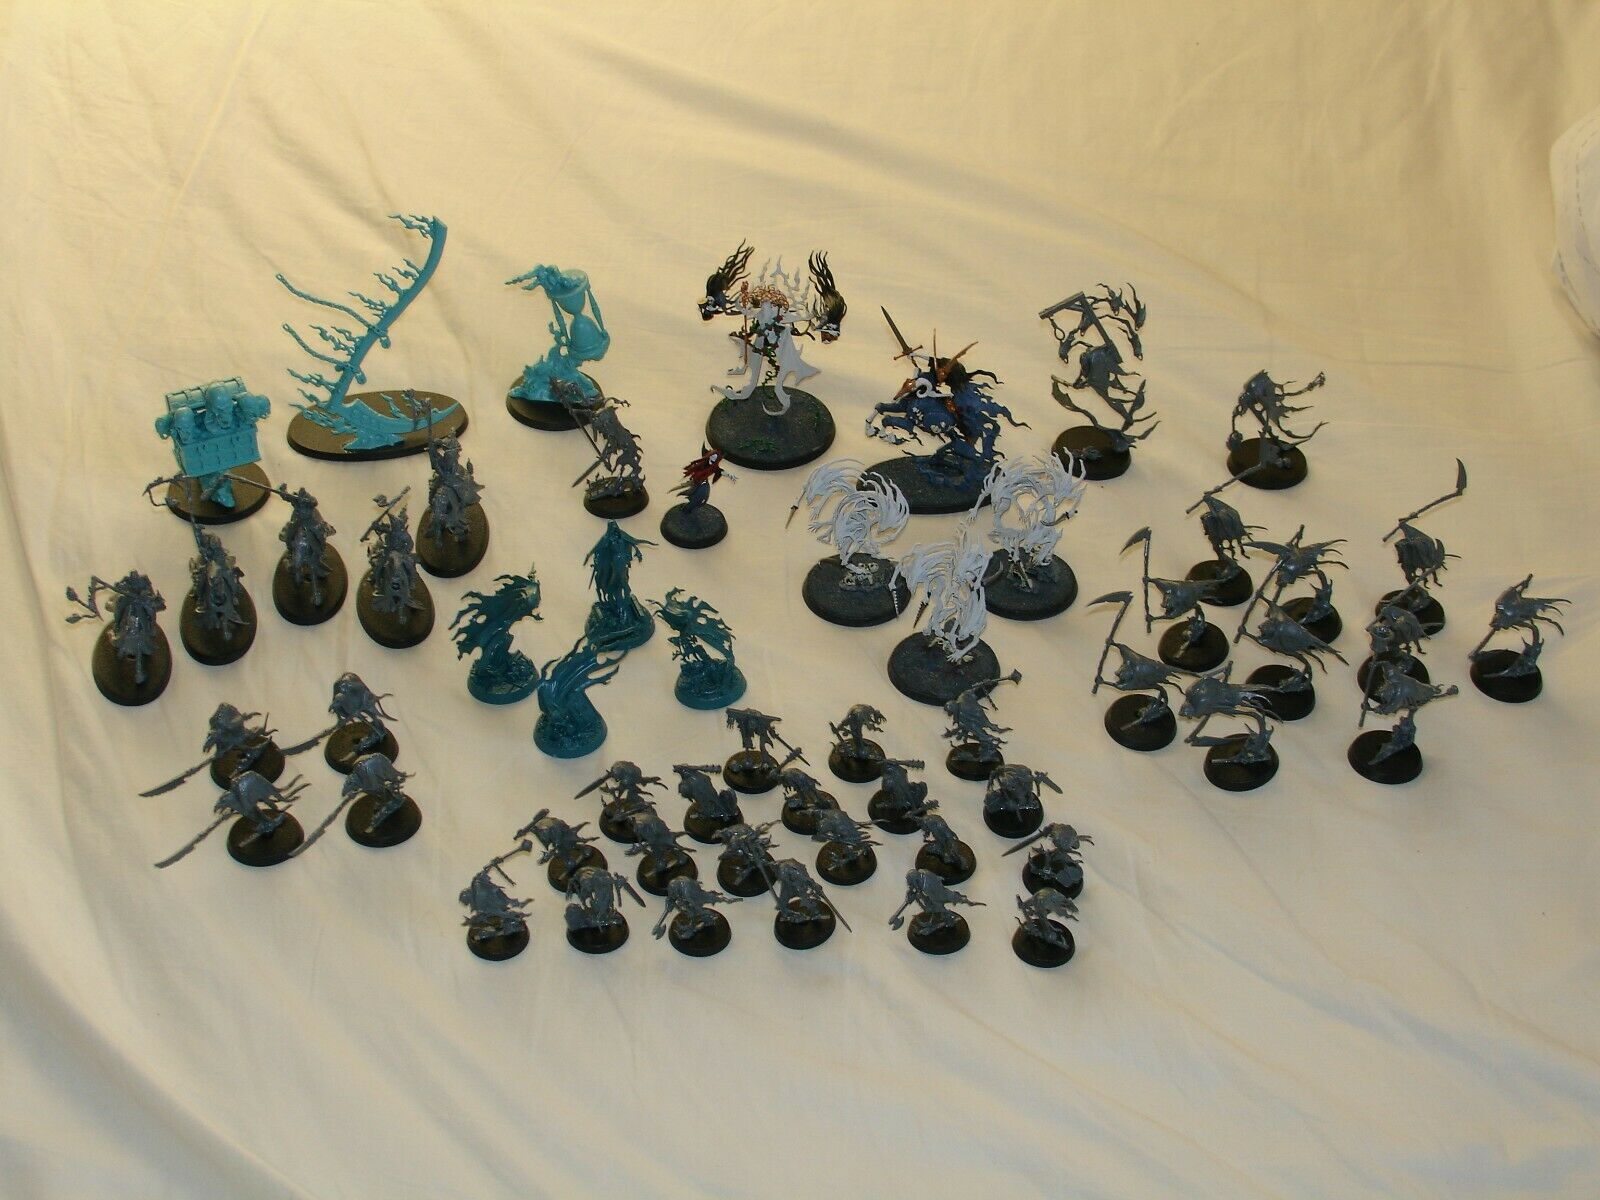 Warhammer Age of Sigmar - Nighthaunt Army